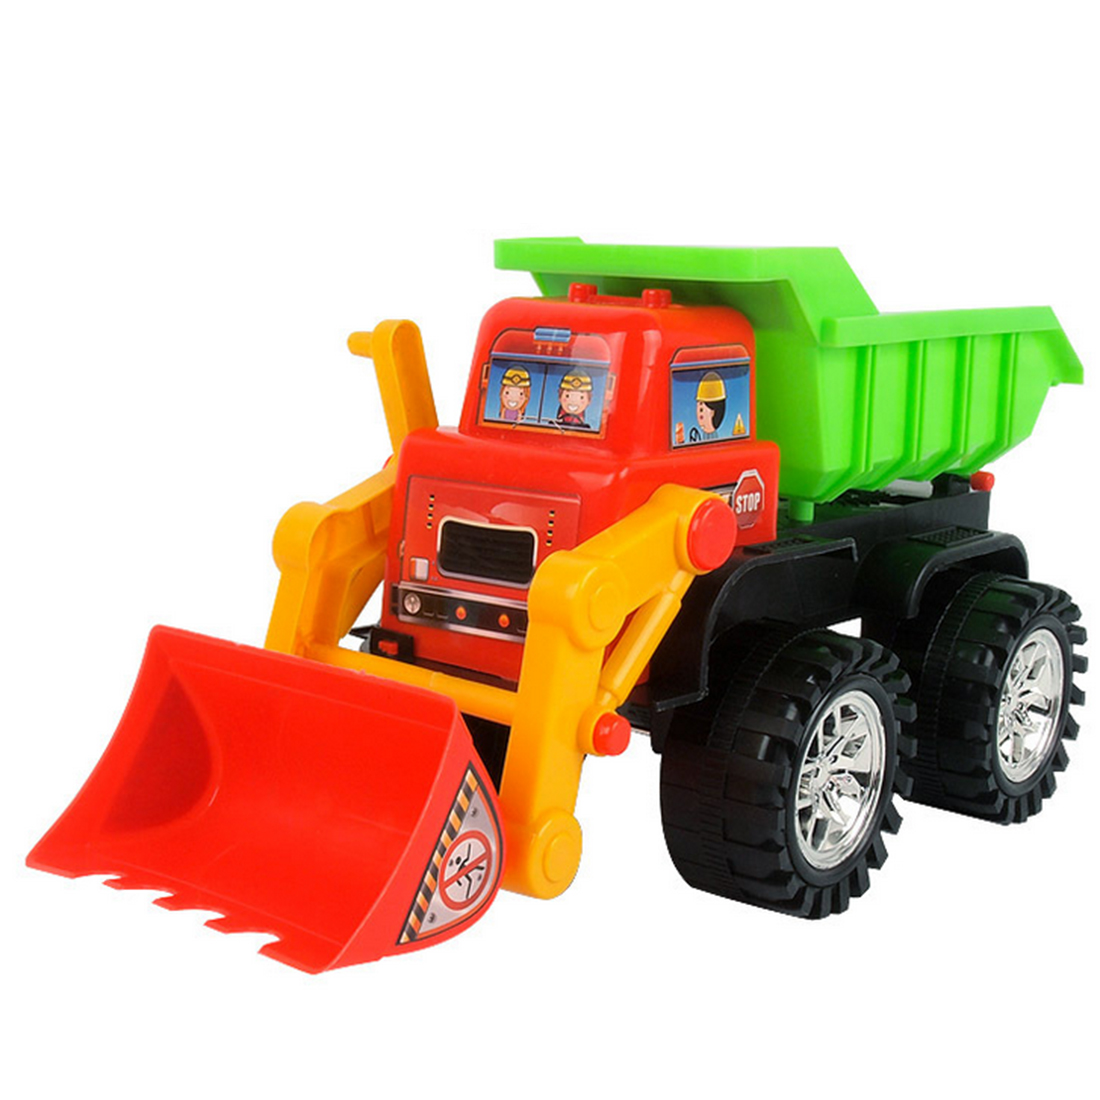 NFSTRIKE Plastic Beach Toy Forklift Children Machineshop Truck Series Simulation Kids Fancy Educational Water Pool Sand Toys